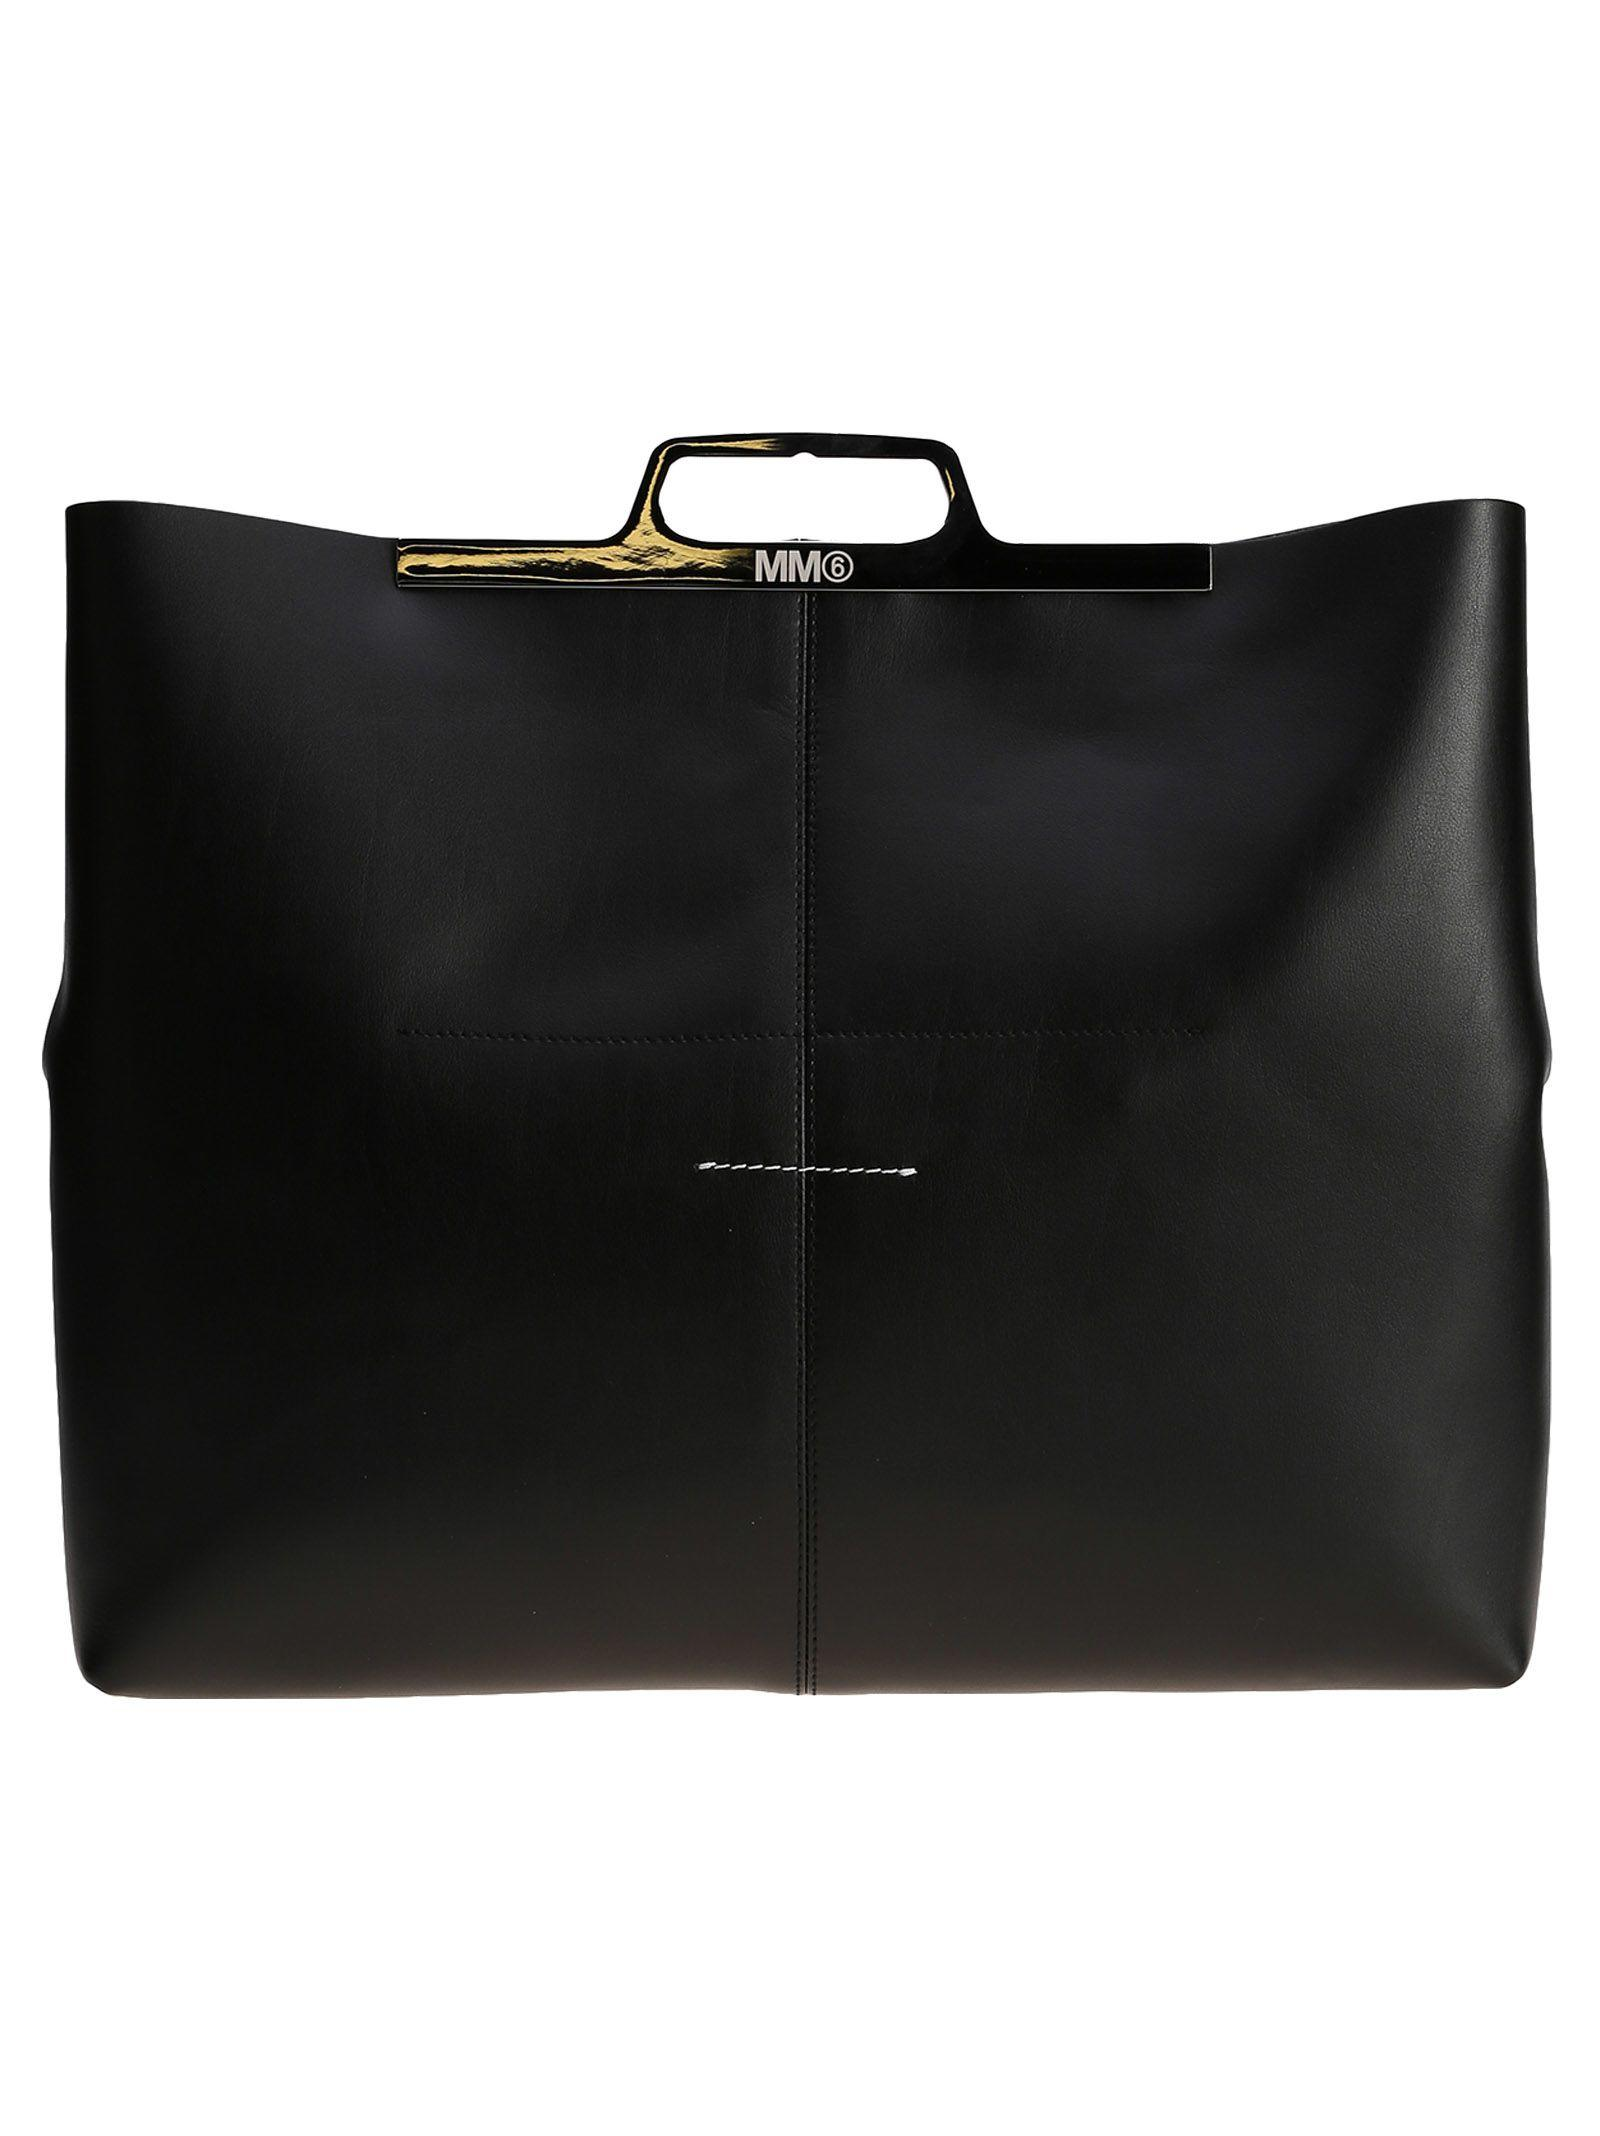 Mm6 Maison Margiela Leather Tote In Black